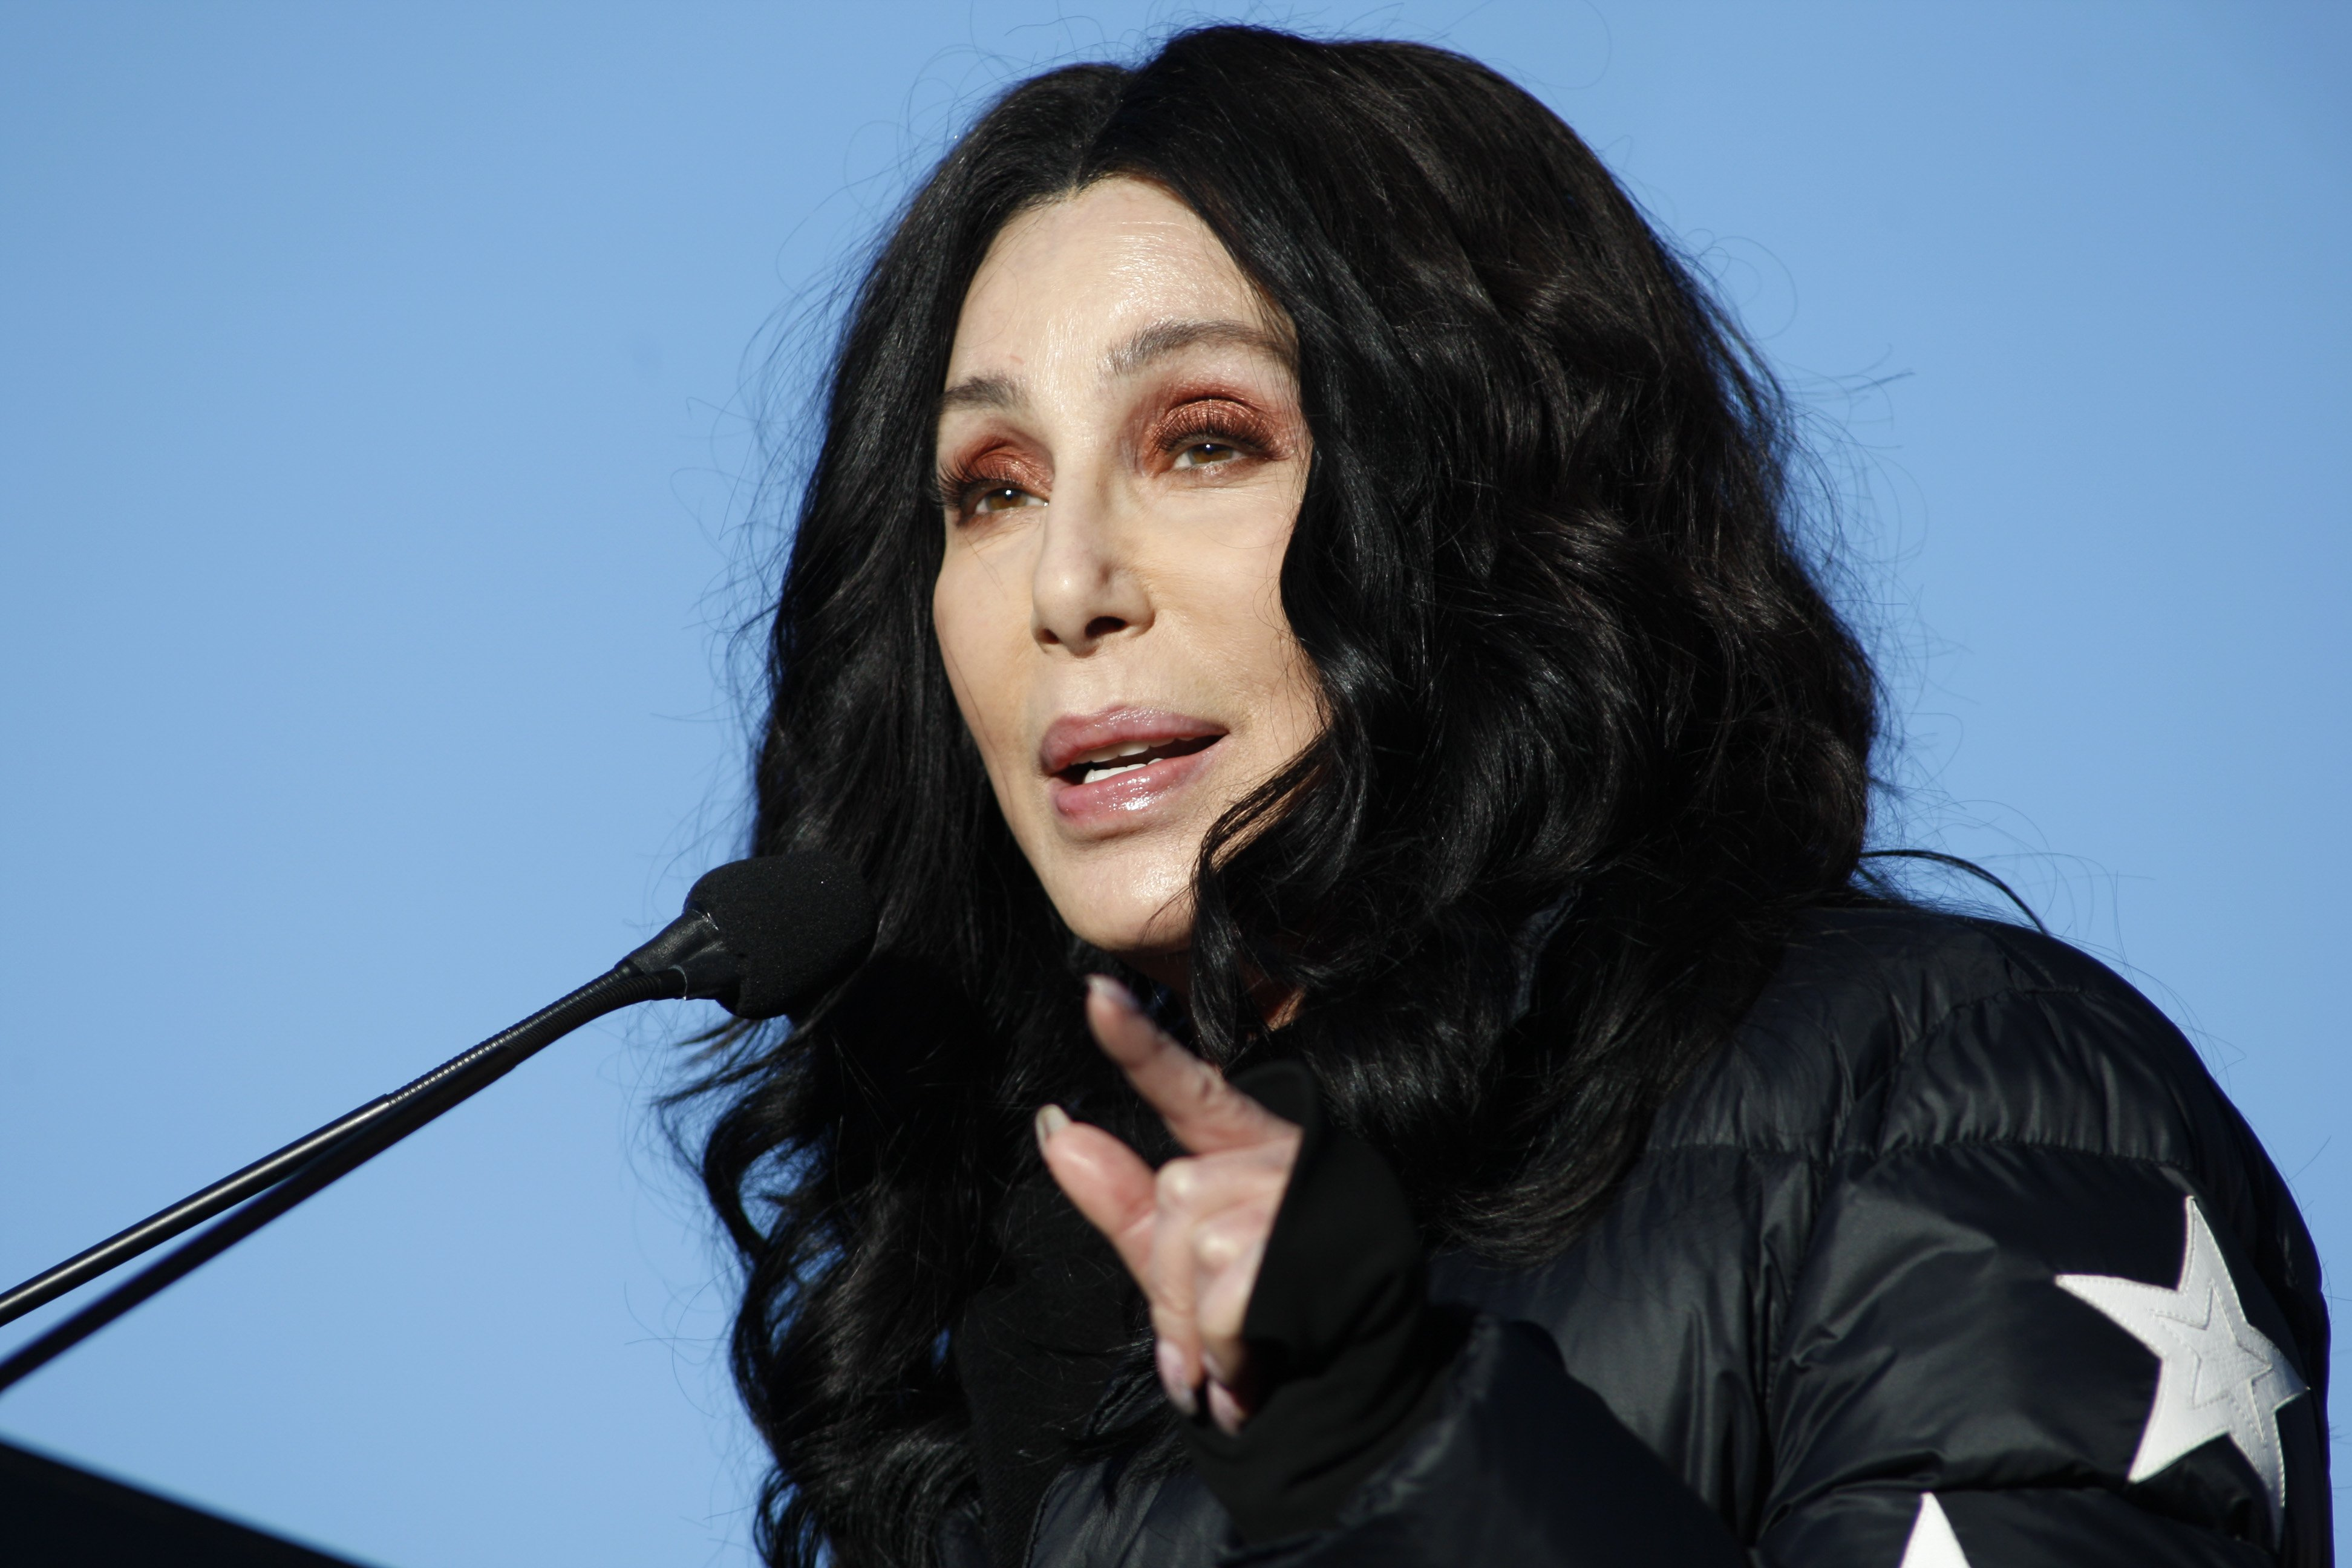 Cher on January 21, 2018, in Las Vegas, Nevada   Source: Getty Images